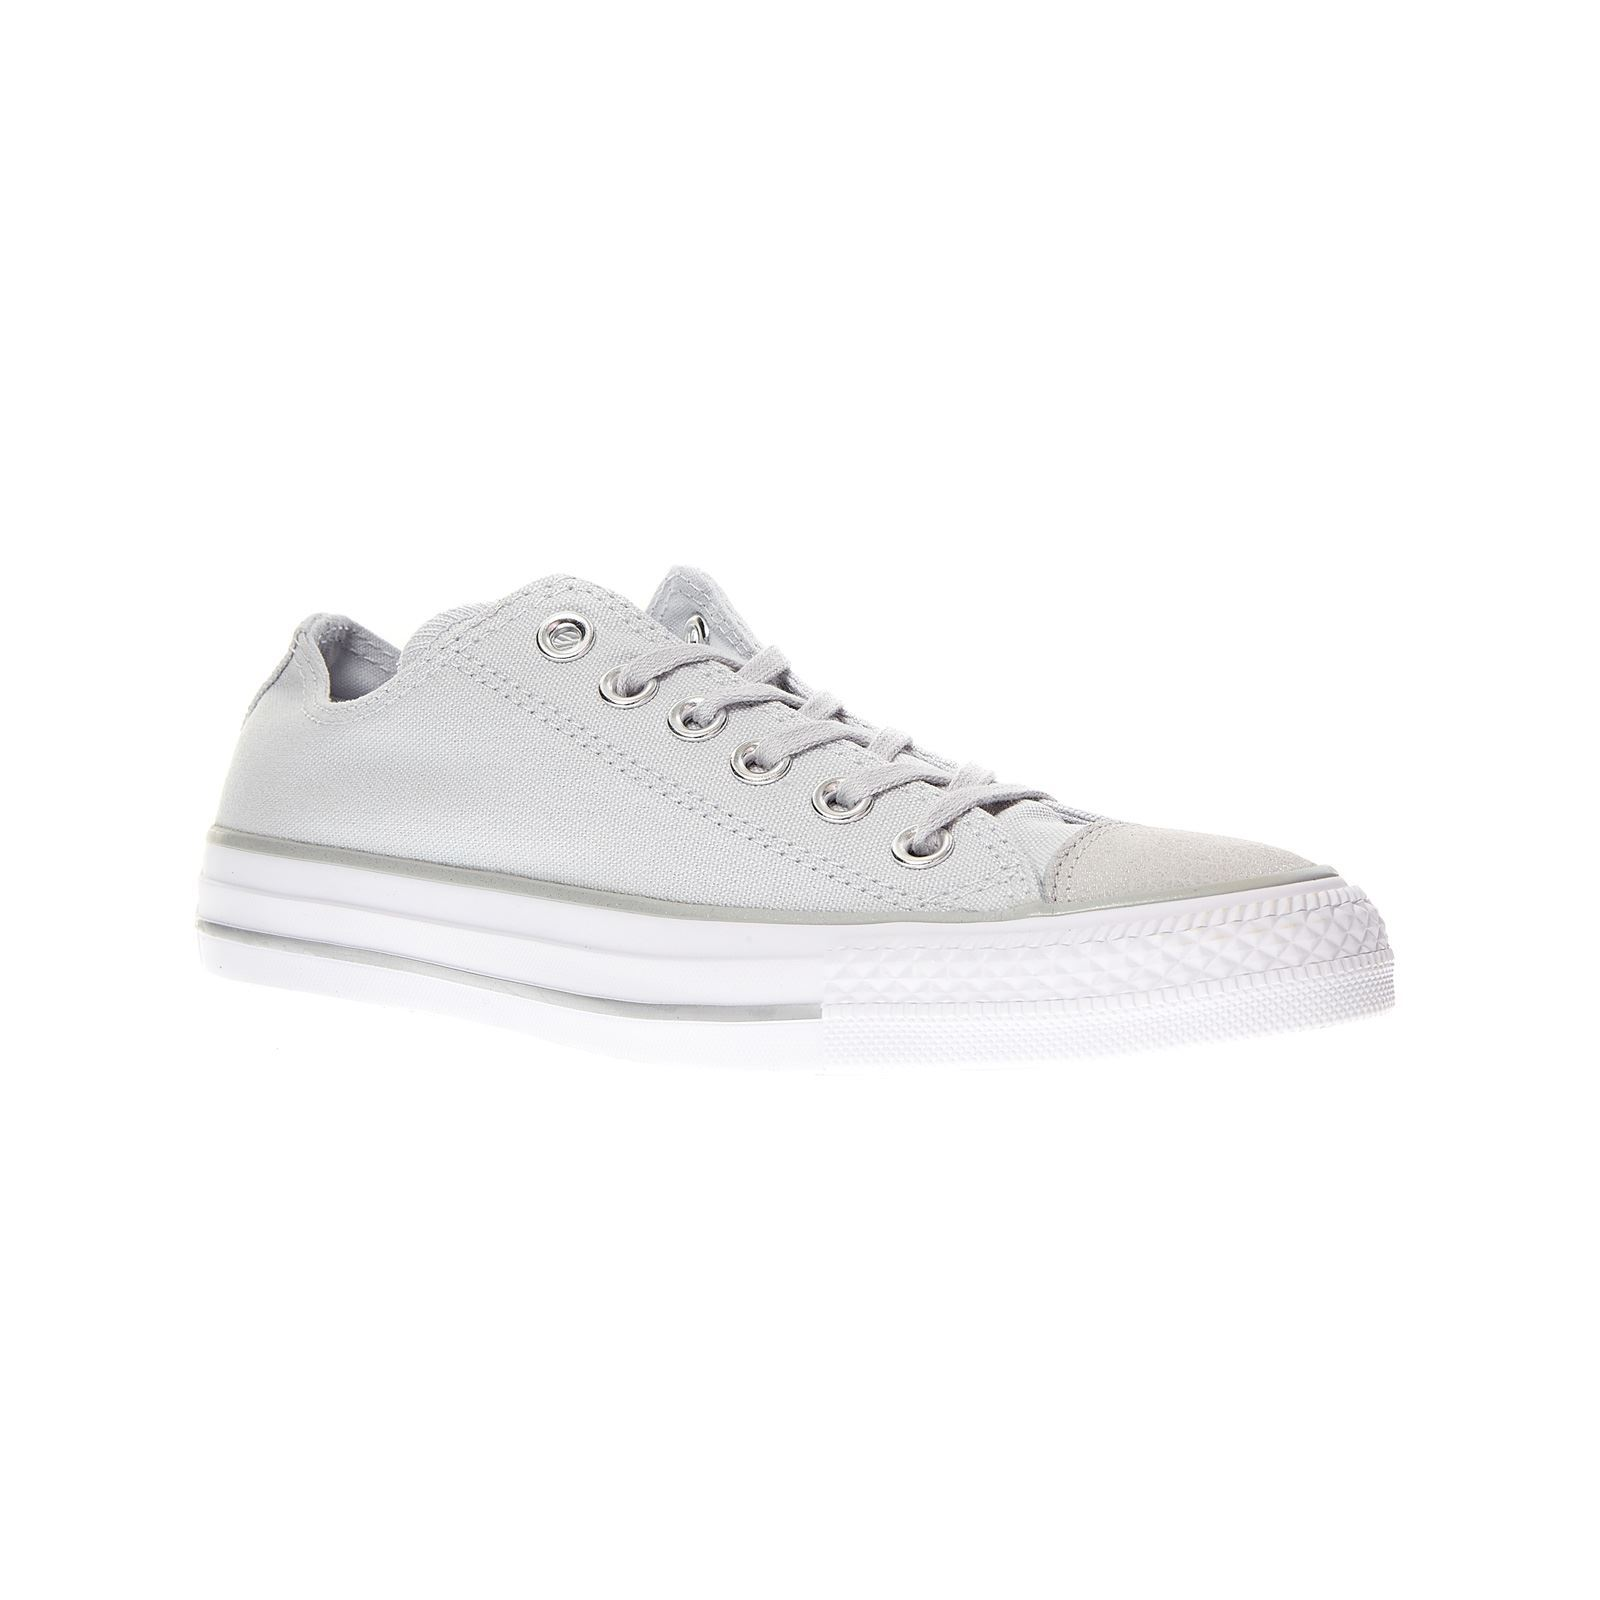 quality design 09c8b 134cd Converse Chuck Taylor All Star Tipped Metallic Toecap Ox - Baskets - argent  Baskets